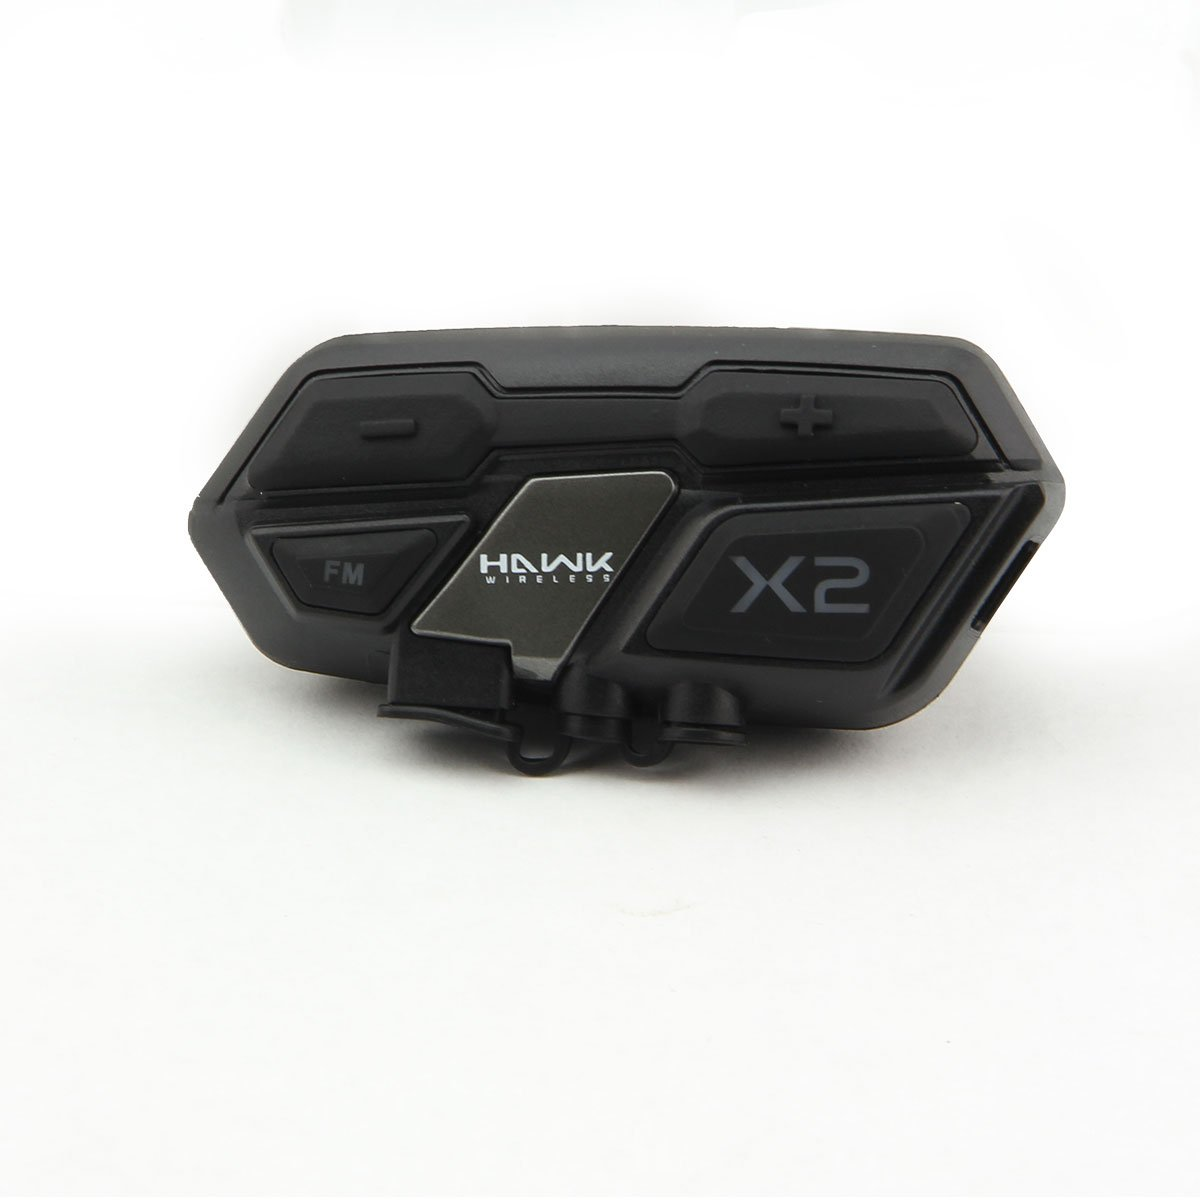 Hawk X2 Black Bluetooth Motorcycle Headset - One Size